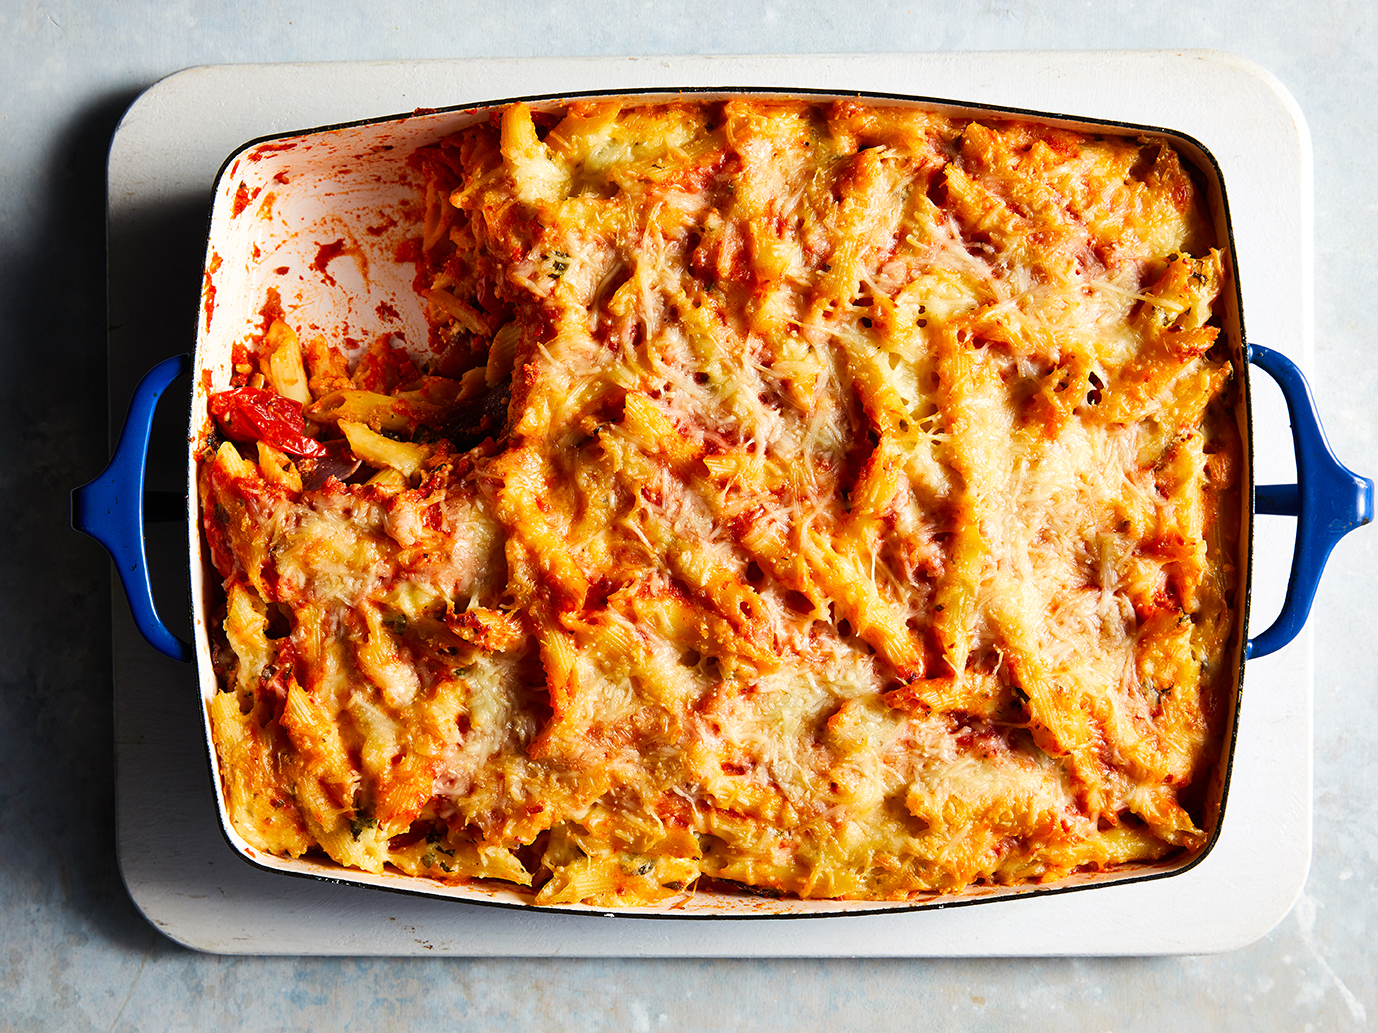 10 Baked Ziti Recipes You Need in Your Life